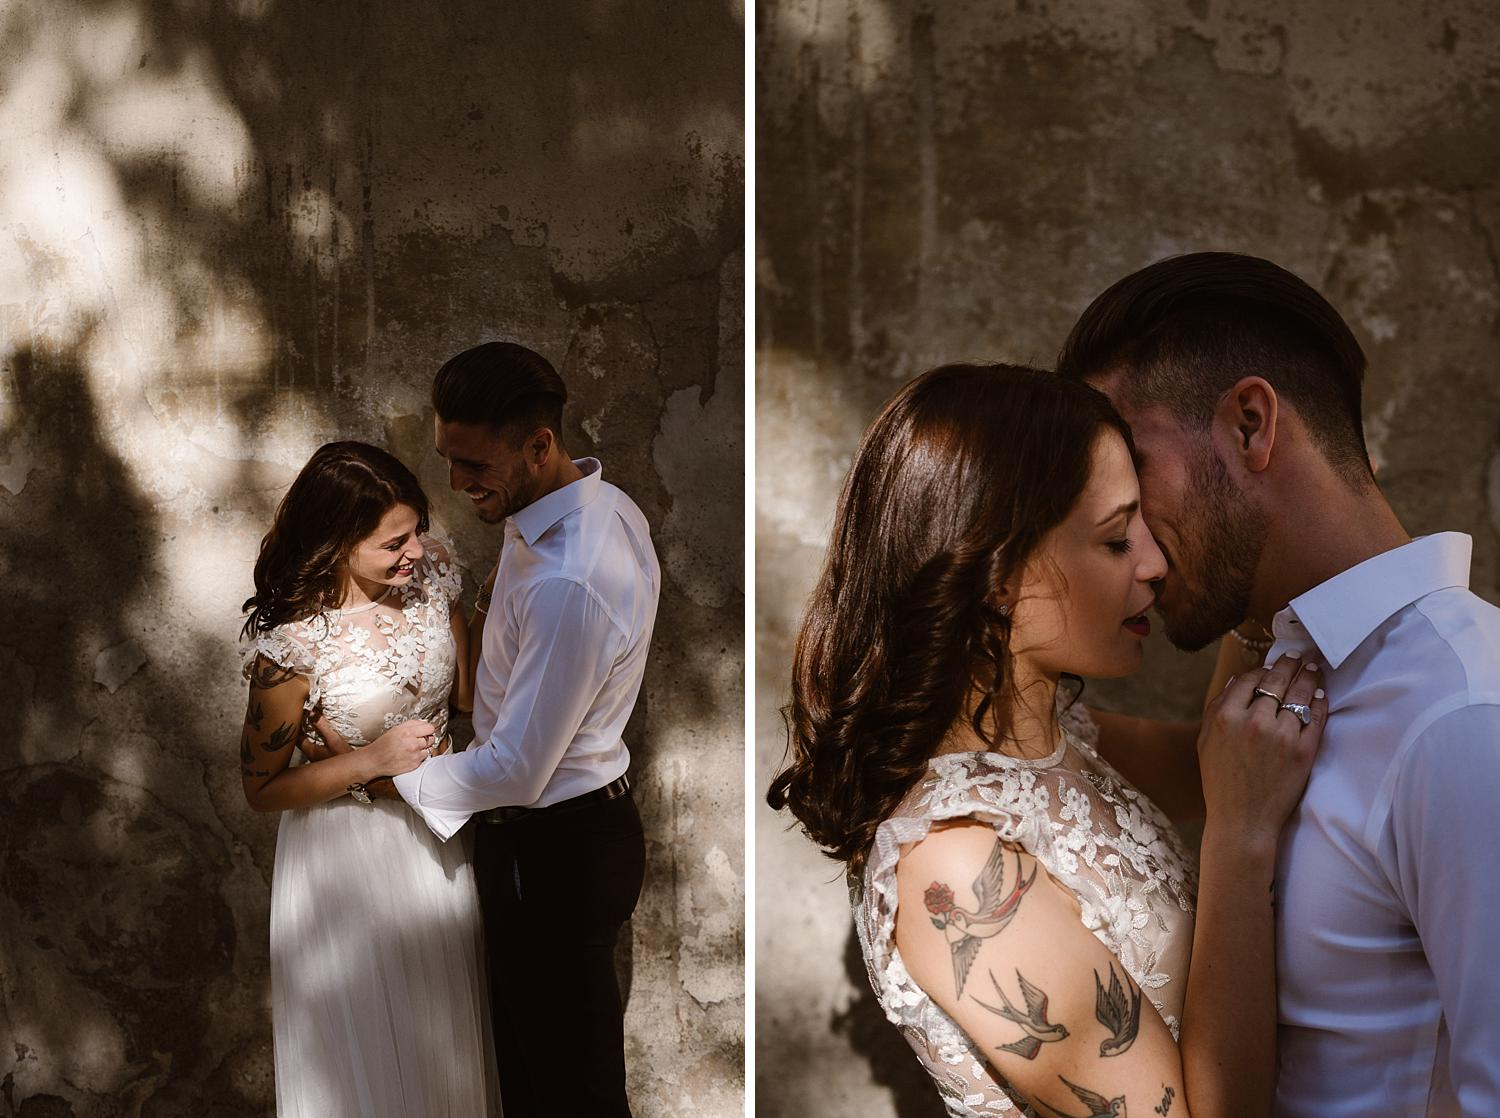 weddingphotographer florence 06 - Maddalena & Arturo - A Chic Anniversary Session in Florence